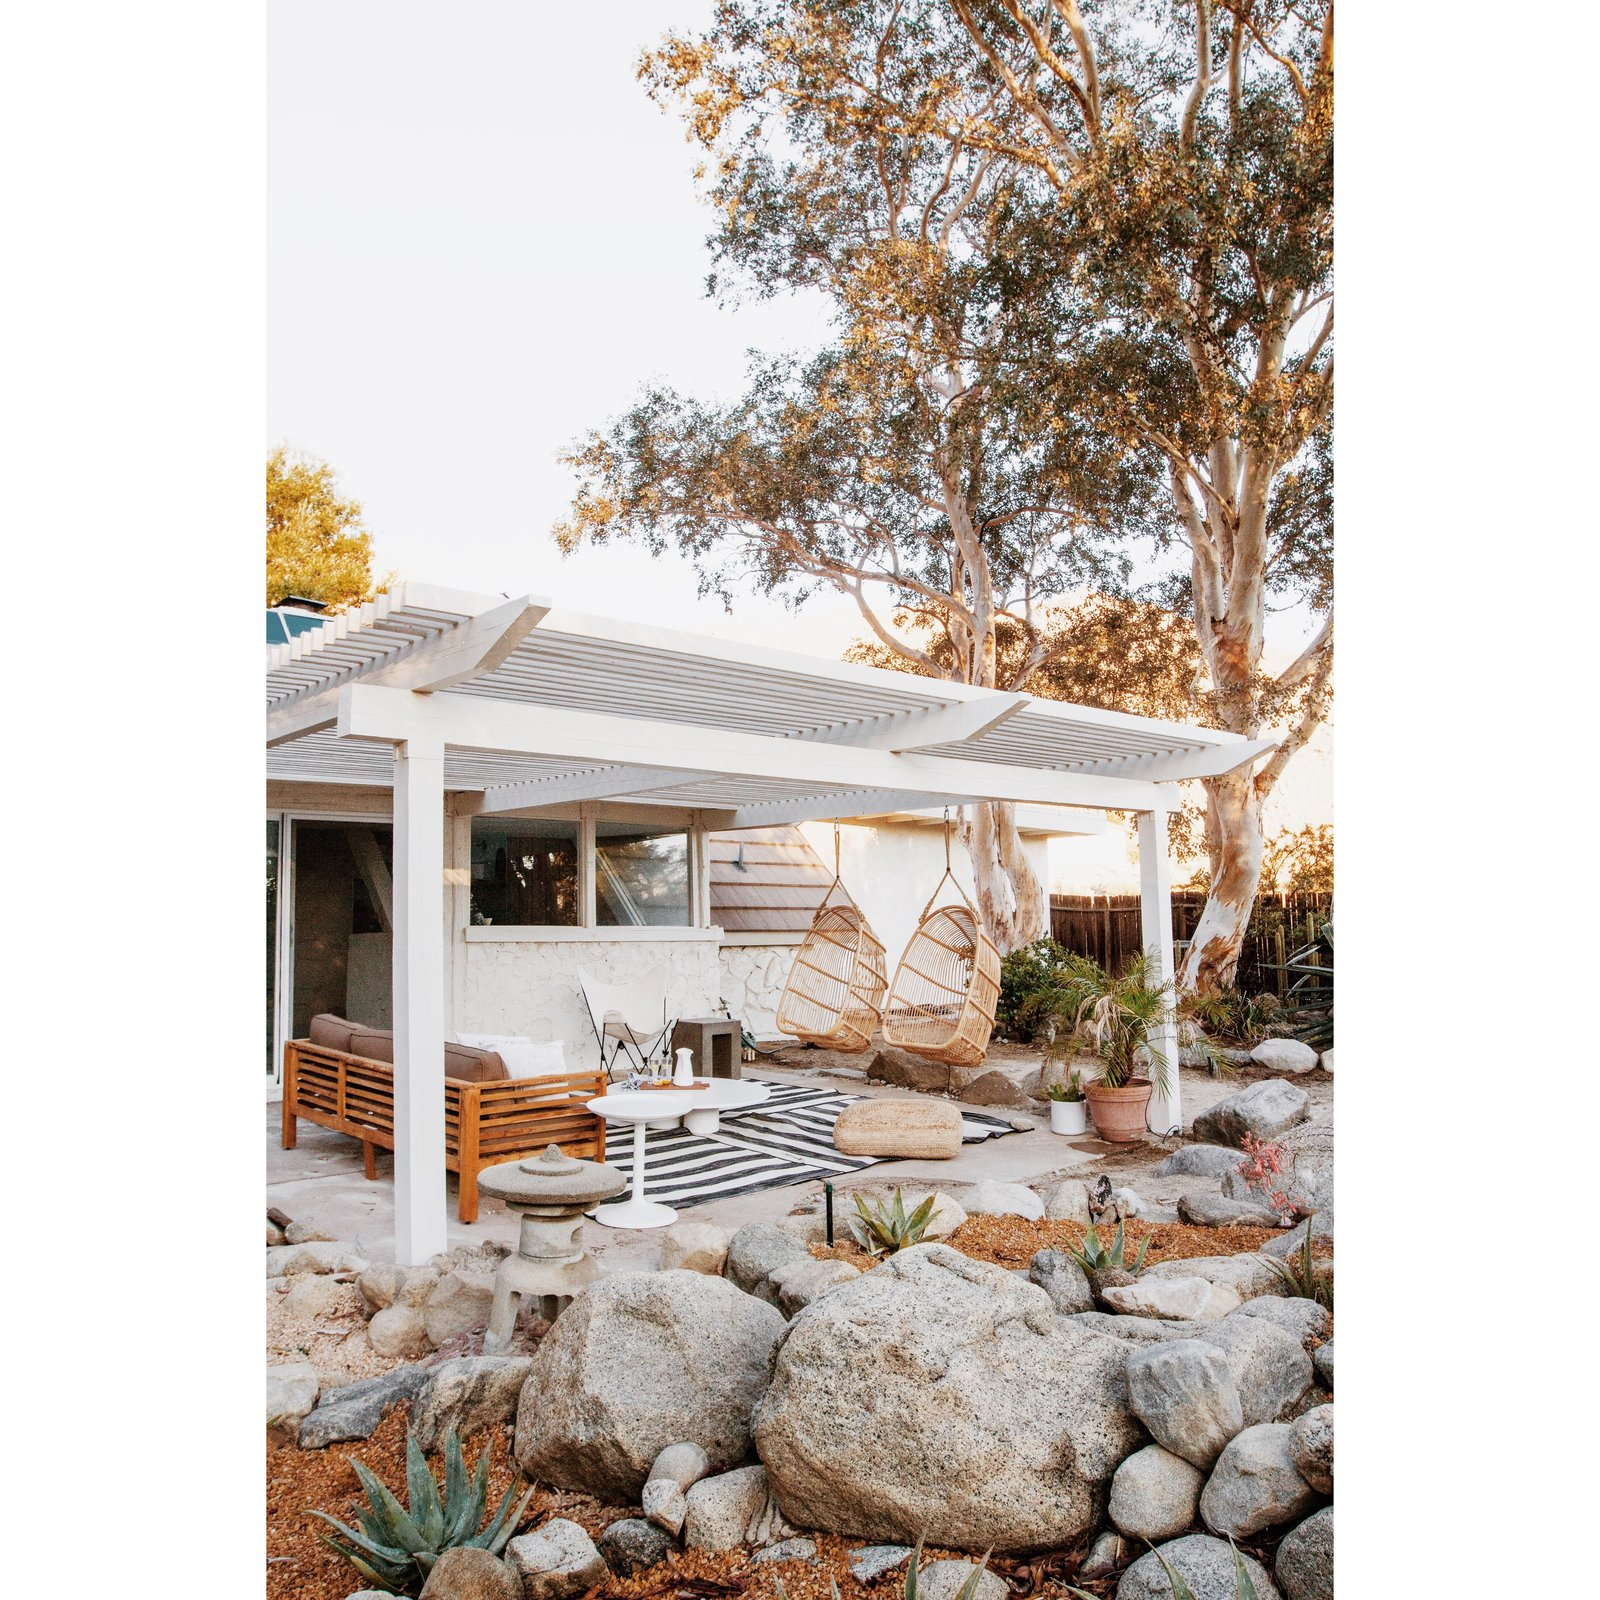 This pergola-covered seating area, complete with hanging chairs, is off the living room.